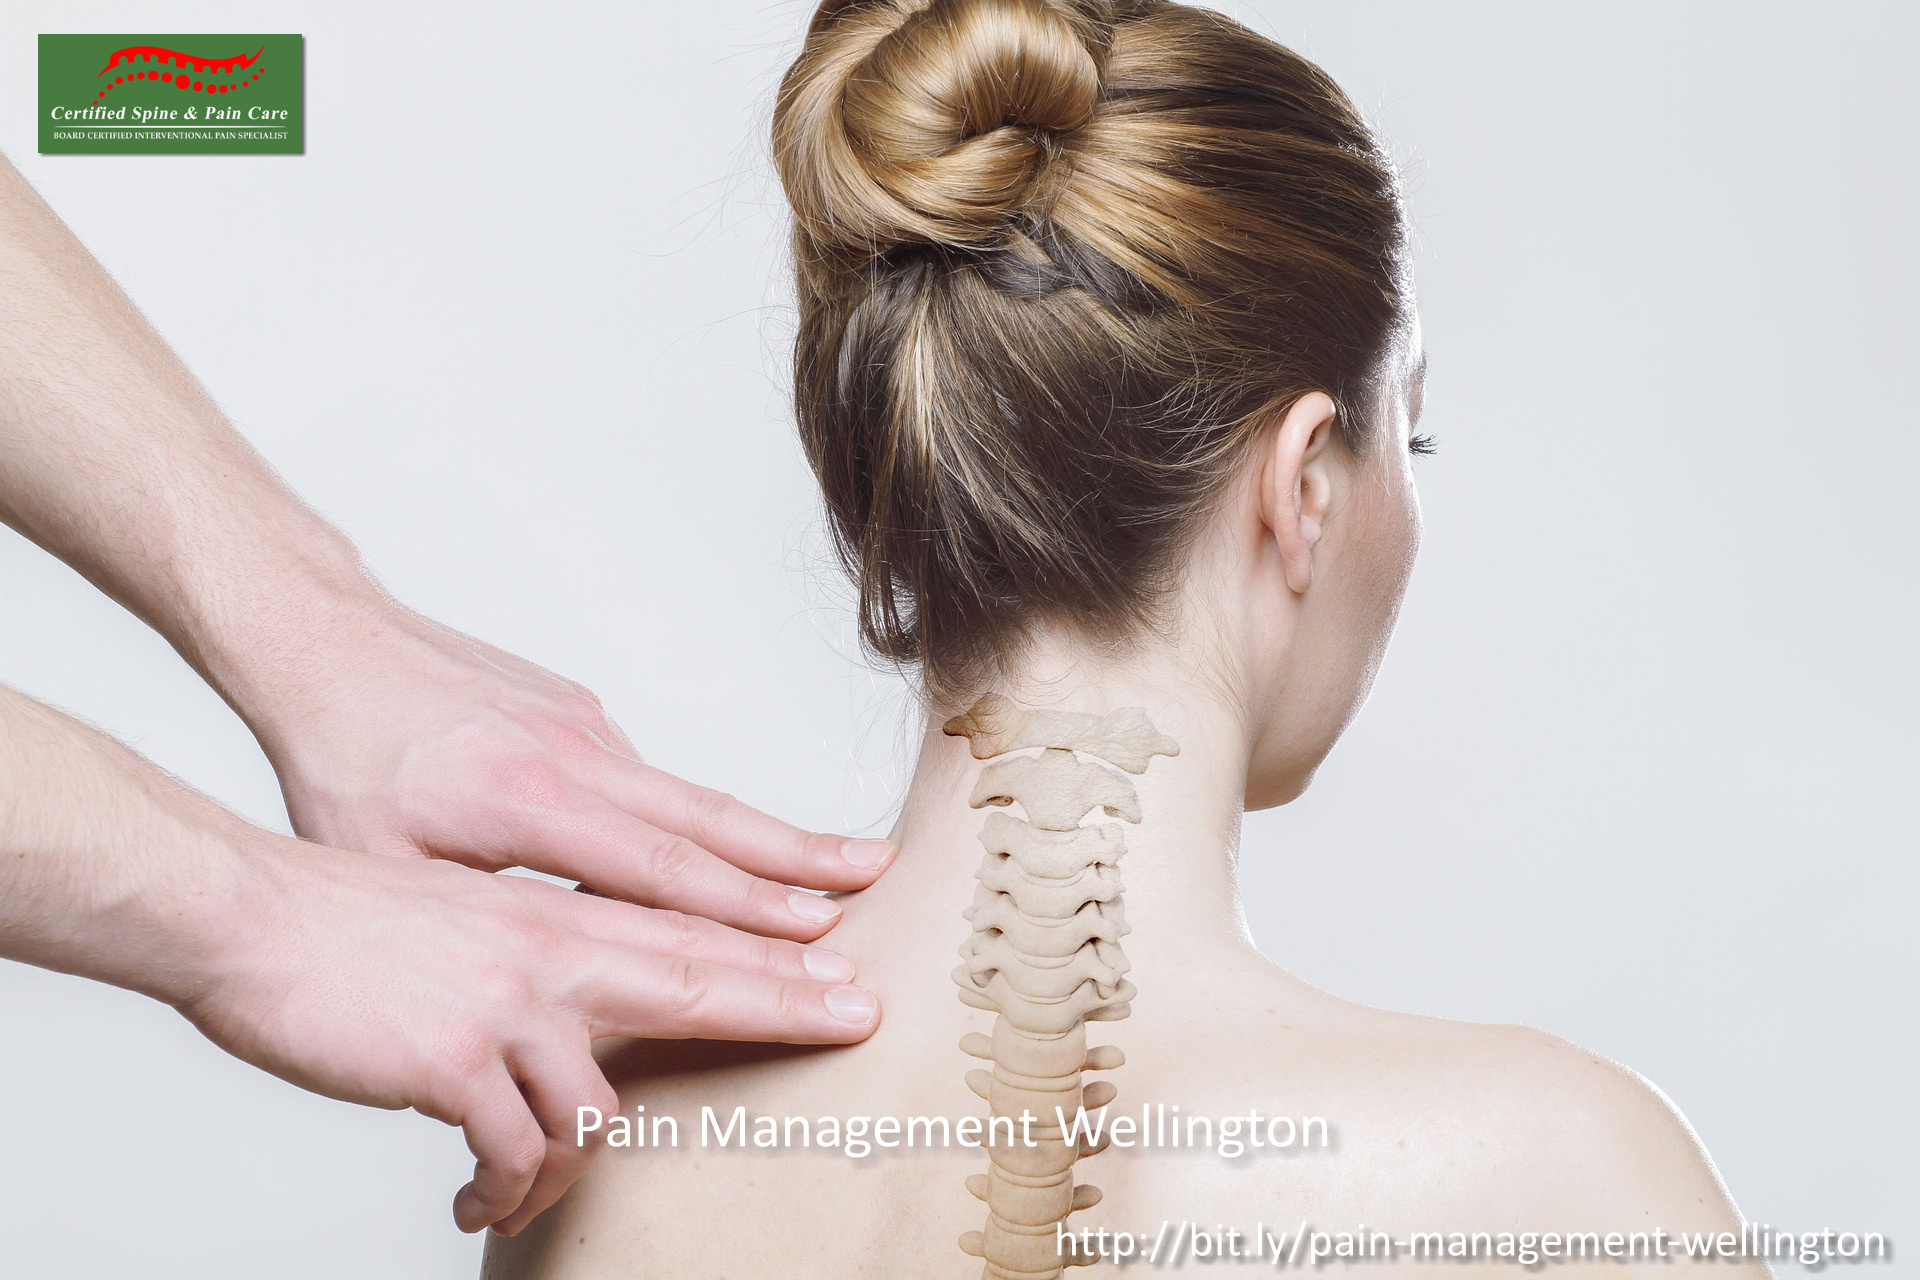 Certified Spine & Pain Care Discloses Things That Make Their Pain Relief Services Stand Out